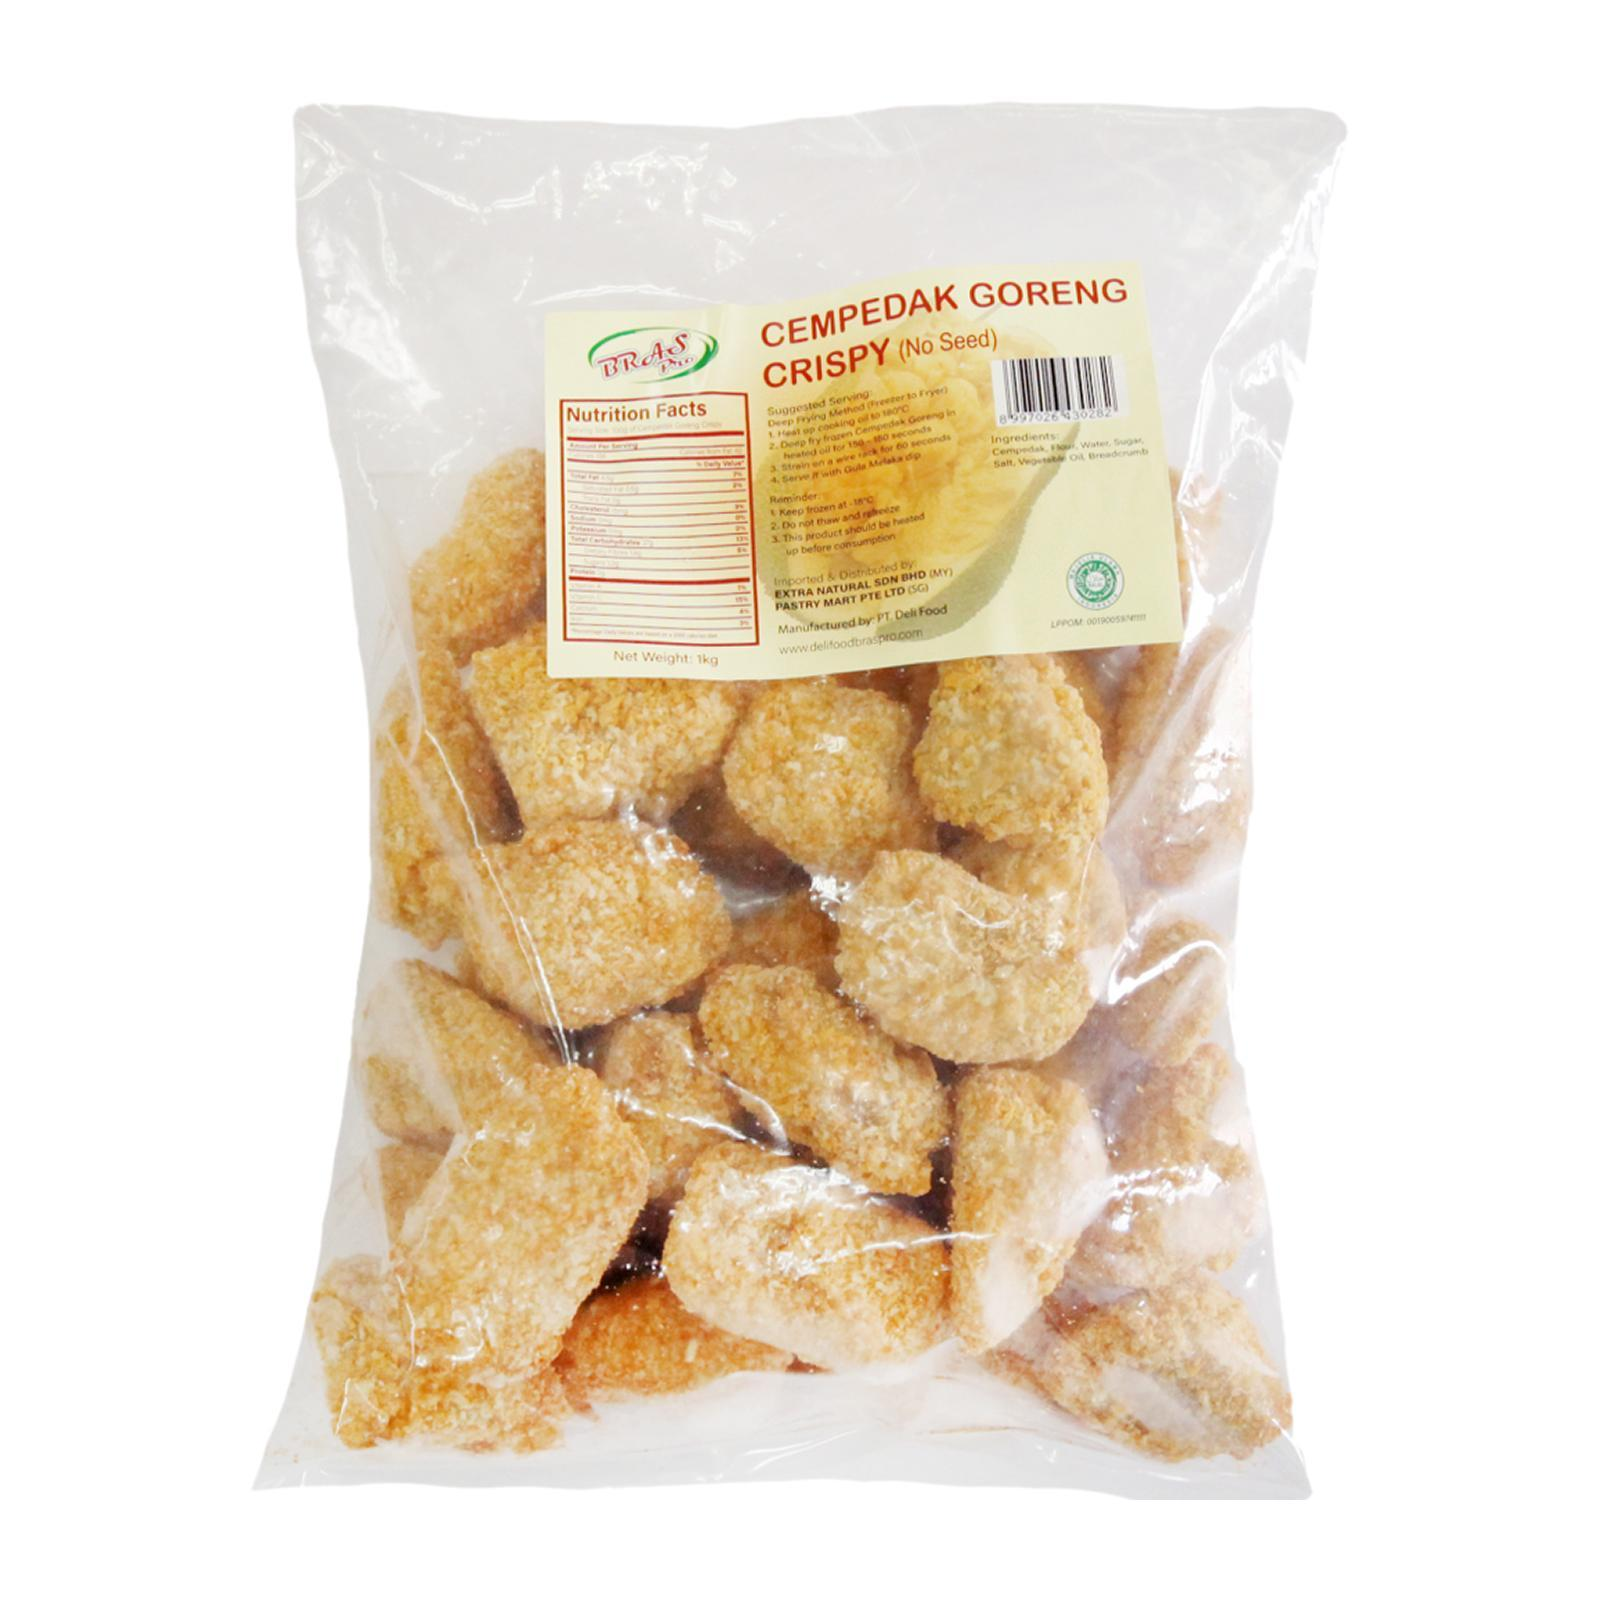 Pastry Mart Extra Natural Frozen Cempedak Goreng Snack (Without Seed) - Approx. 30 PCS - Frozen